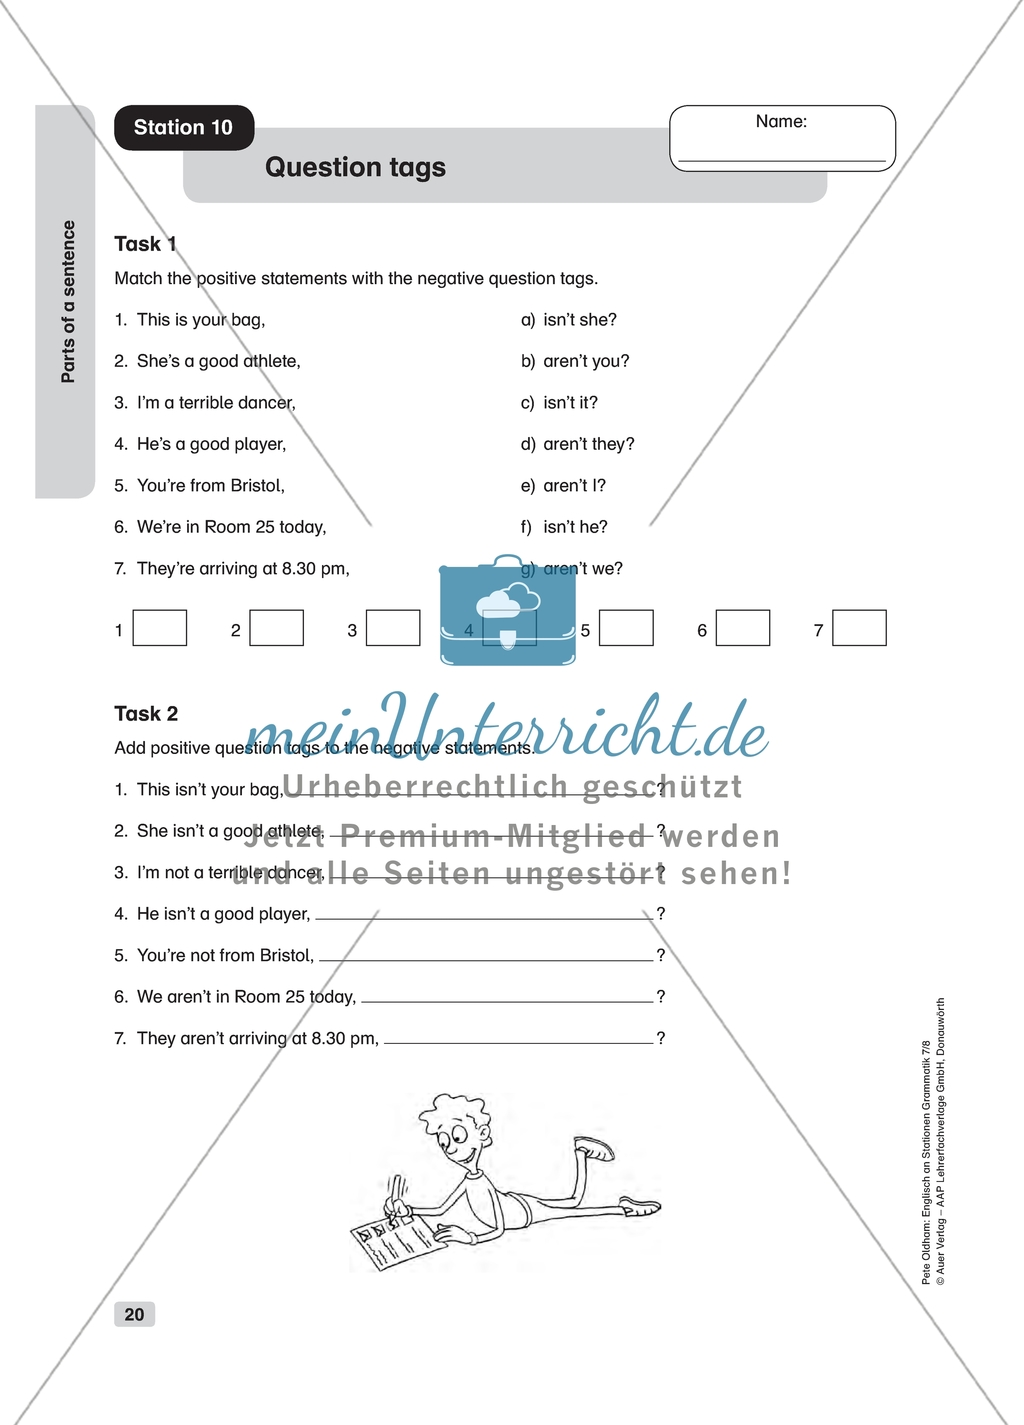 Grammar Question Tags Worksheet And Solution